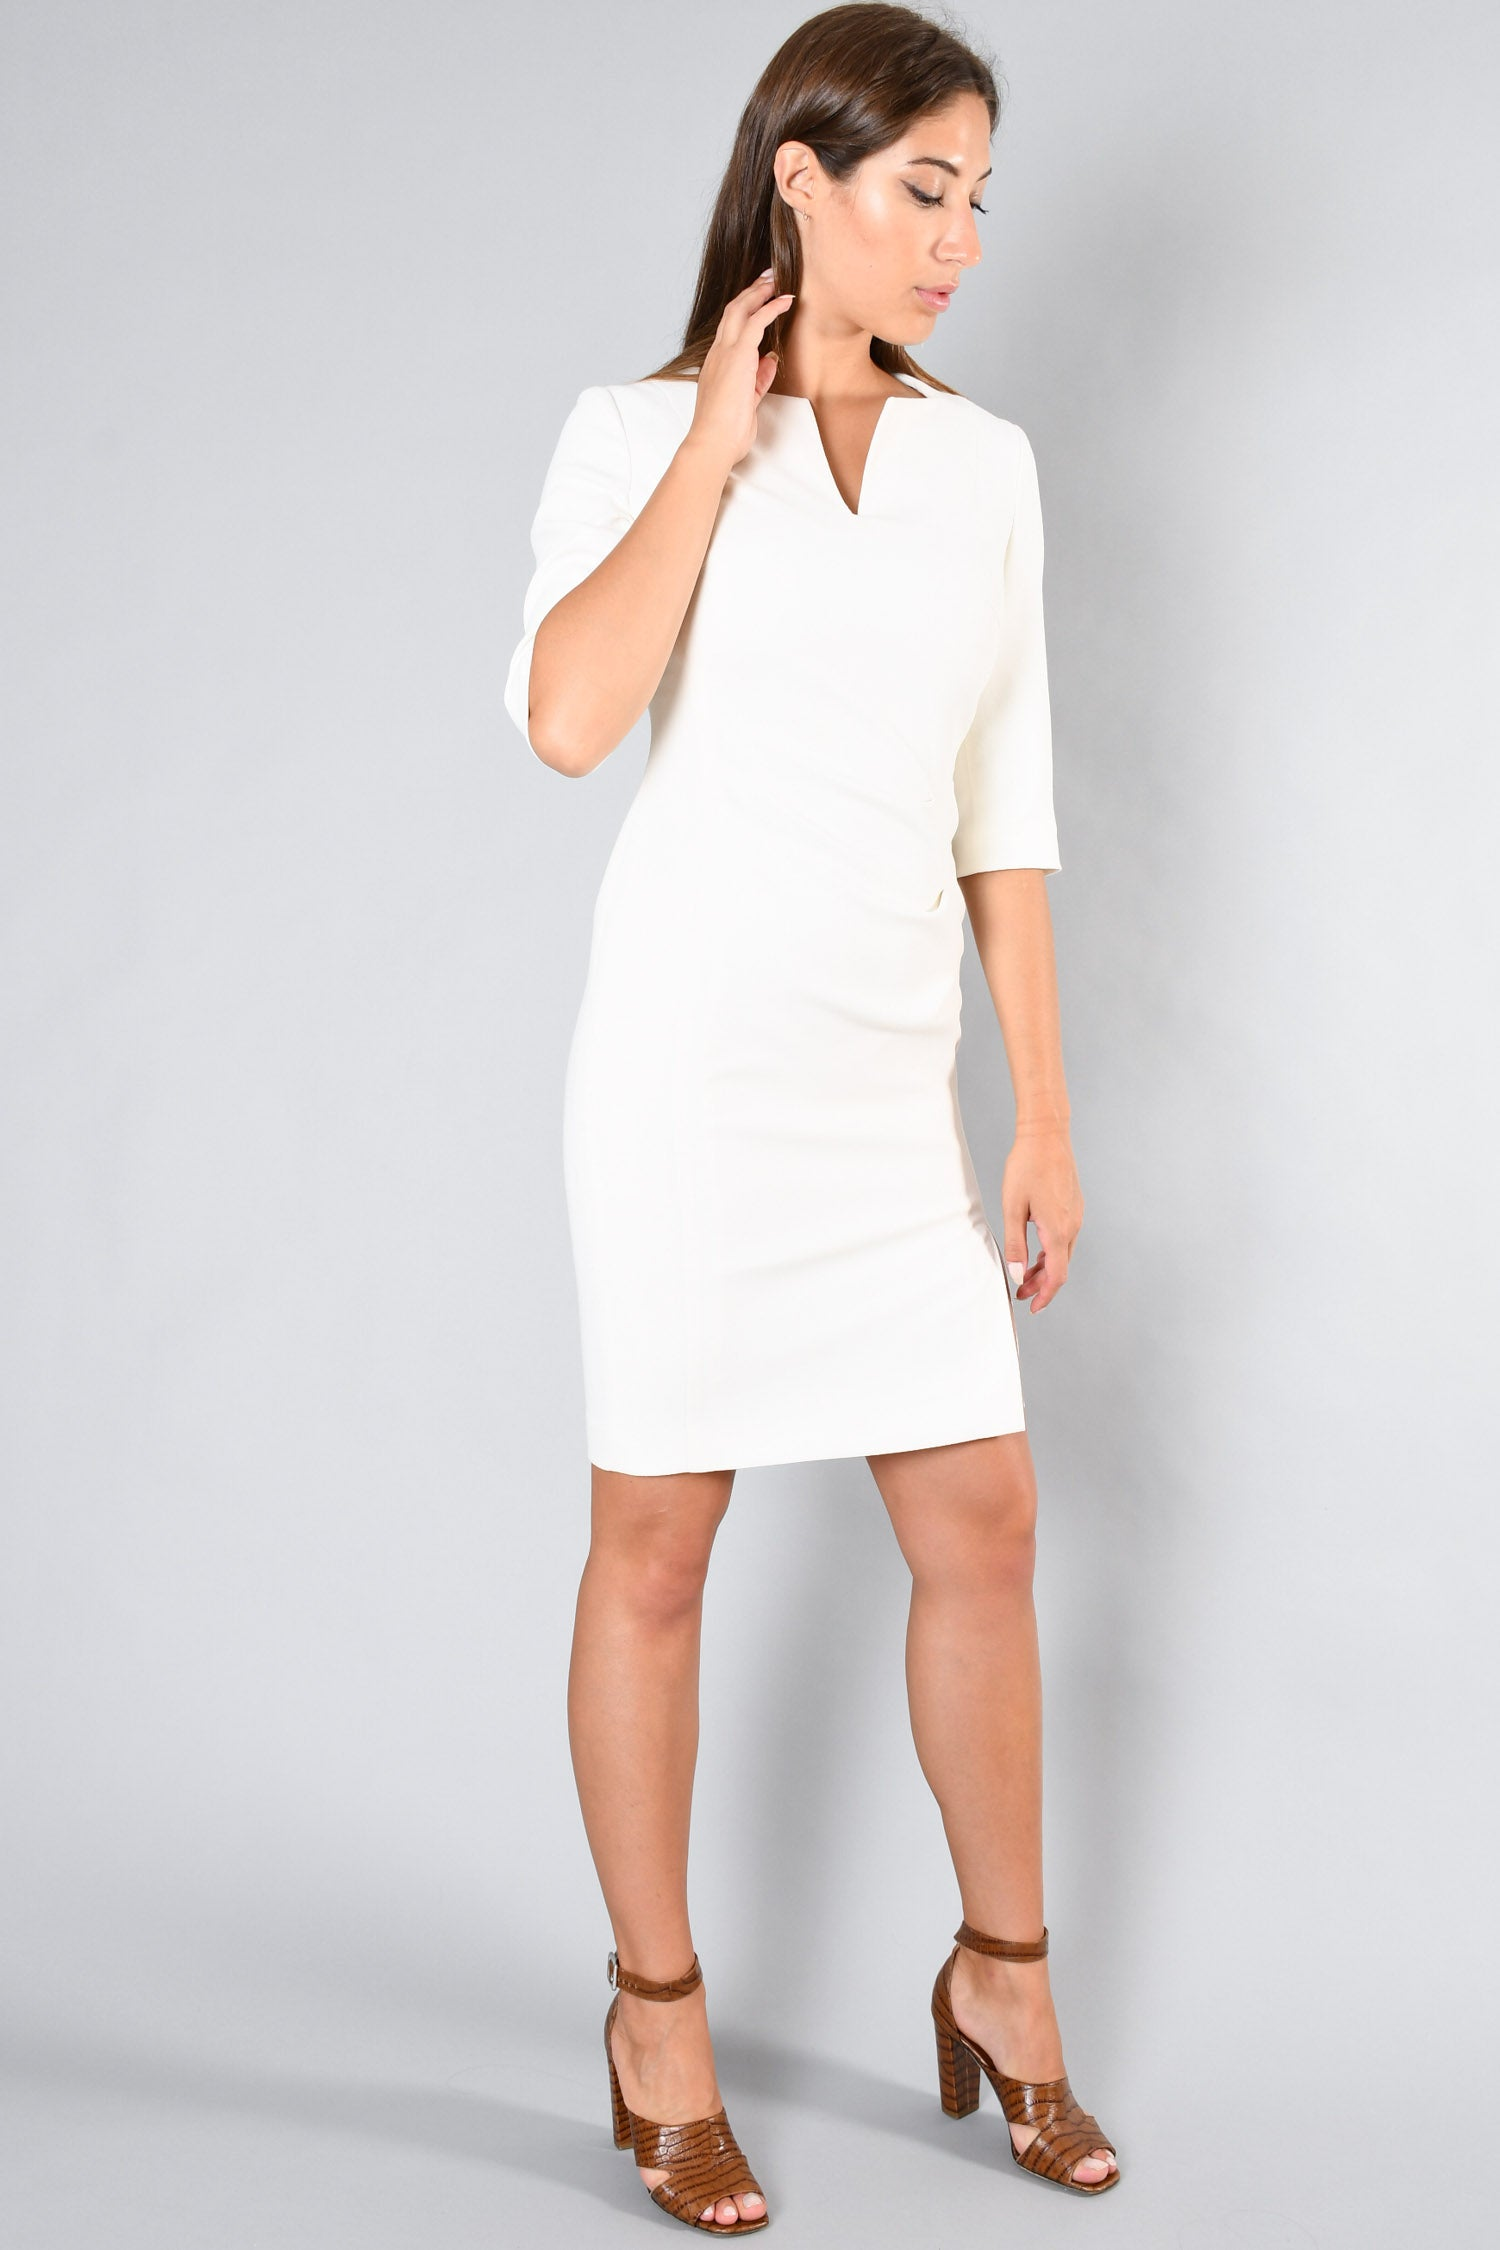 L.K. Bennett London Cream Quarter Sleeve Midi Dress Size 6 US